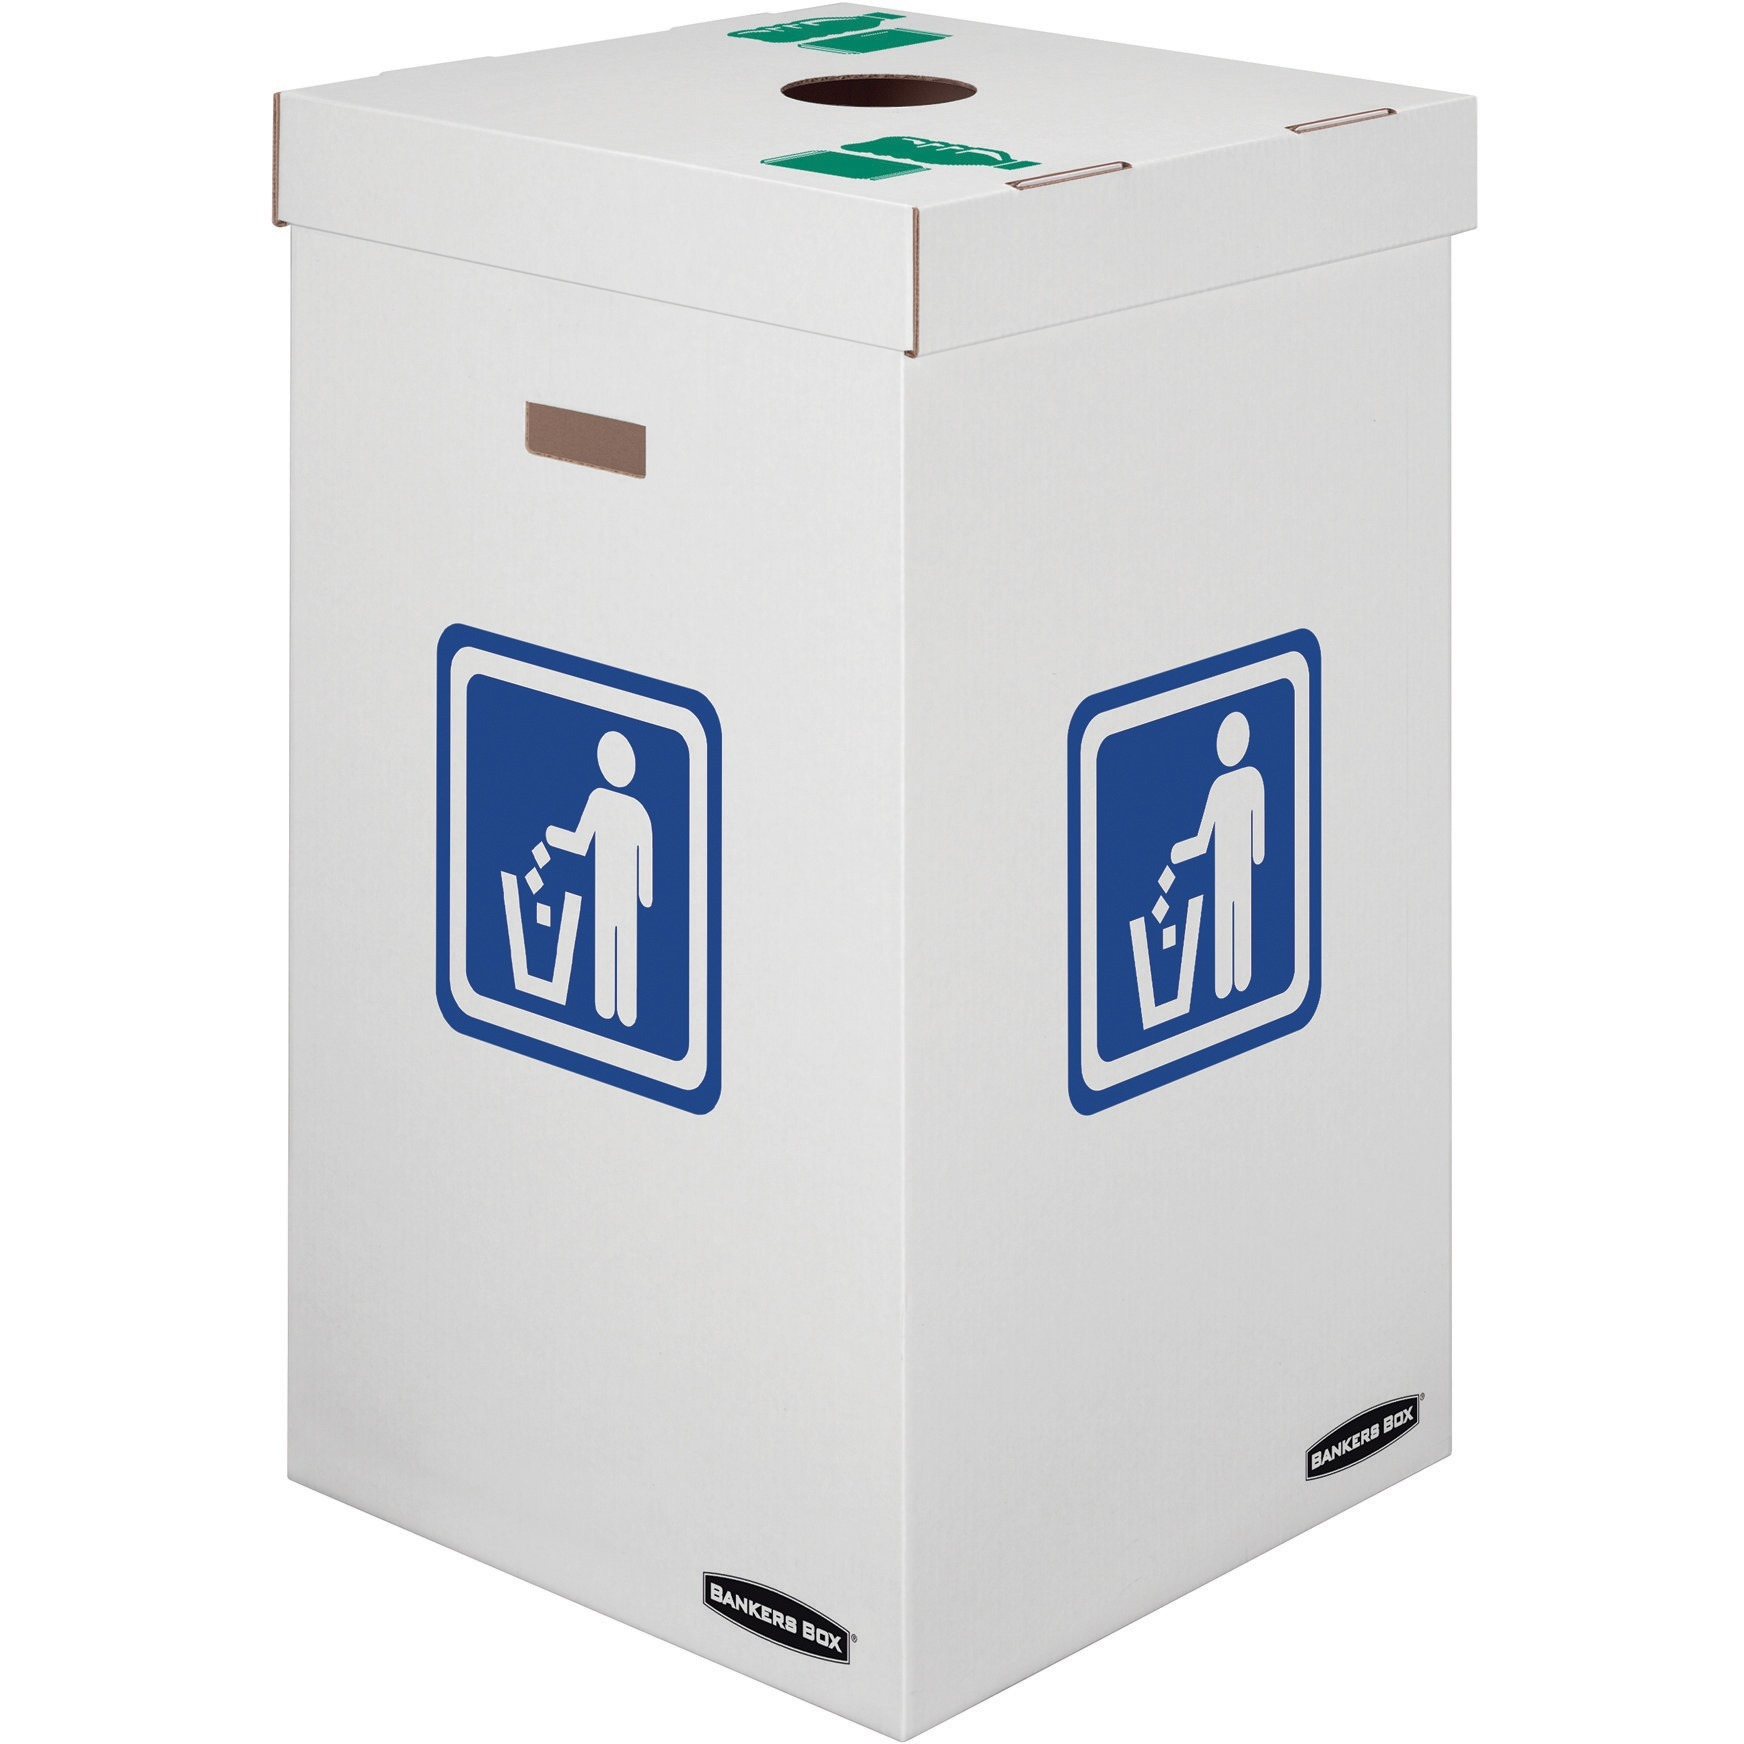 Bankers Box Waste and Recycling Bins - 42 gallon, 10/carton